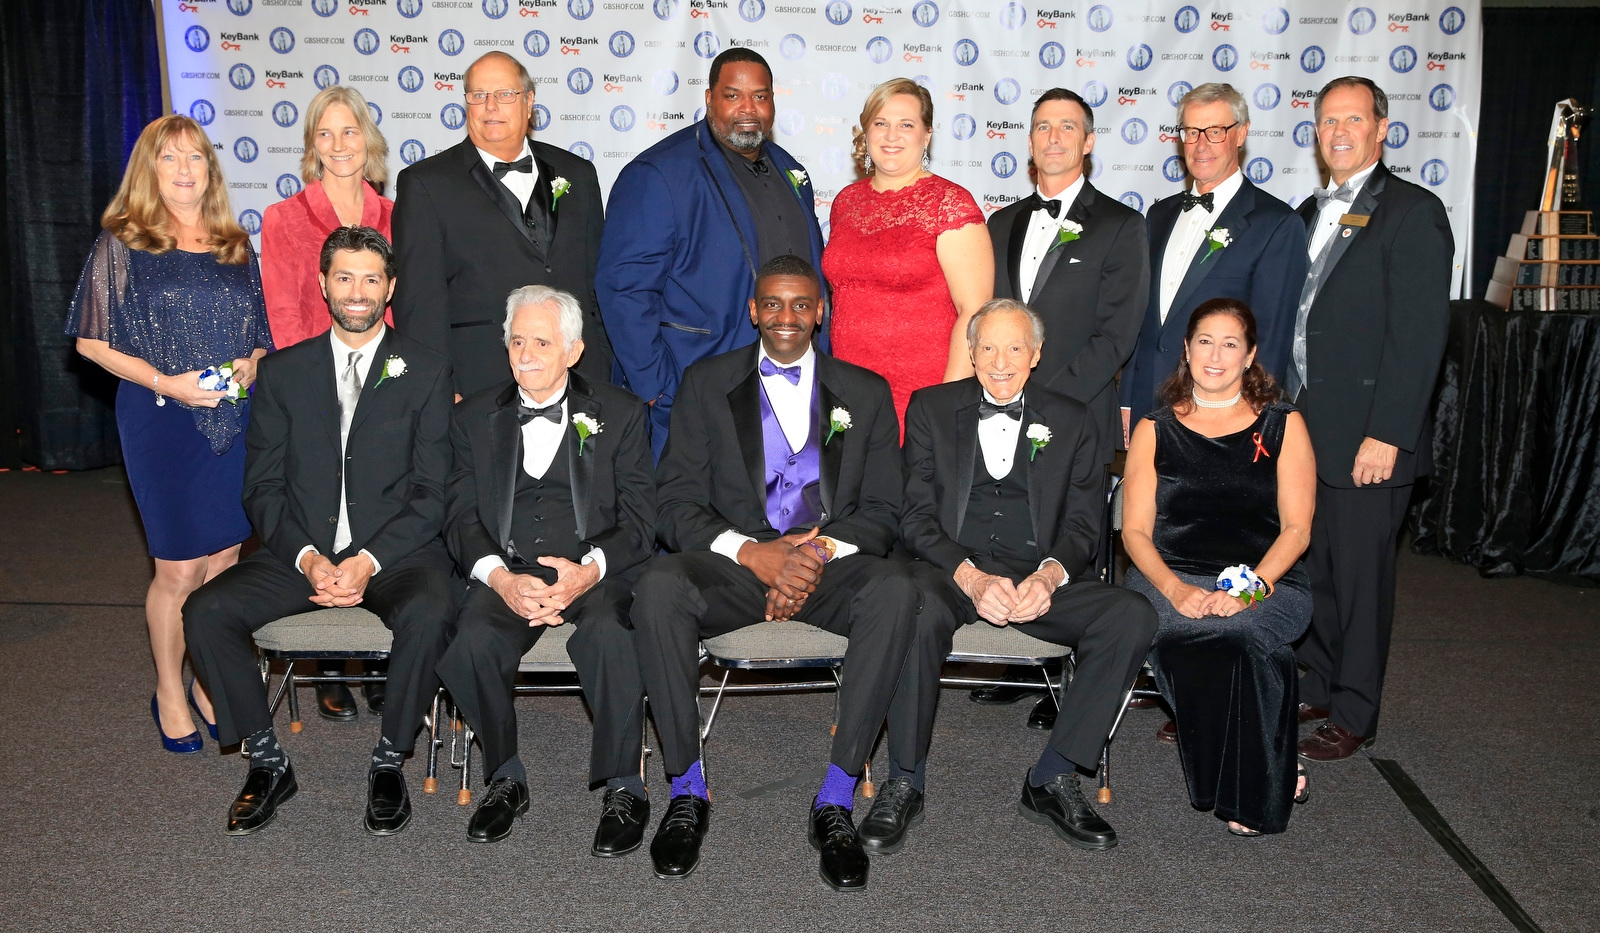 Greater Buffalo Sports Hall of Fame 2017 inductees: Front row, left to right: Michael Peca, Danny DiLiberto, Willie Hutch Jones, Charlie Ou2019Brien, Jodi Hollander (sister of Sandy). Back row, left to right: Terry McGuire (wife of E.J.), Leslie McCormack-Tate (great-granddaughter to Charles Daniels), Dwain Ozark,(son of Dan), Vaughn Parker, Stacey Schroeder-Watt, Tom Terhaar, Mike Keiser and President Tom Koller at the Buffalo Convention Center on Wednesday, Nov. 1, 2017.